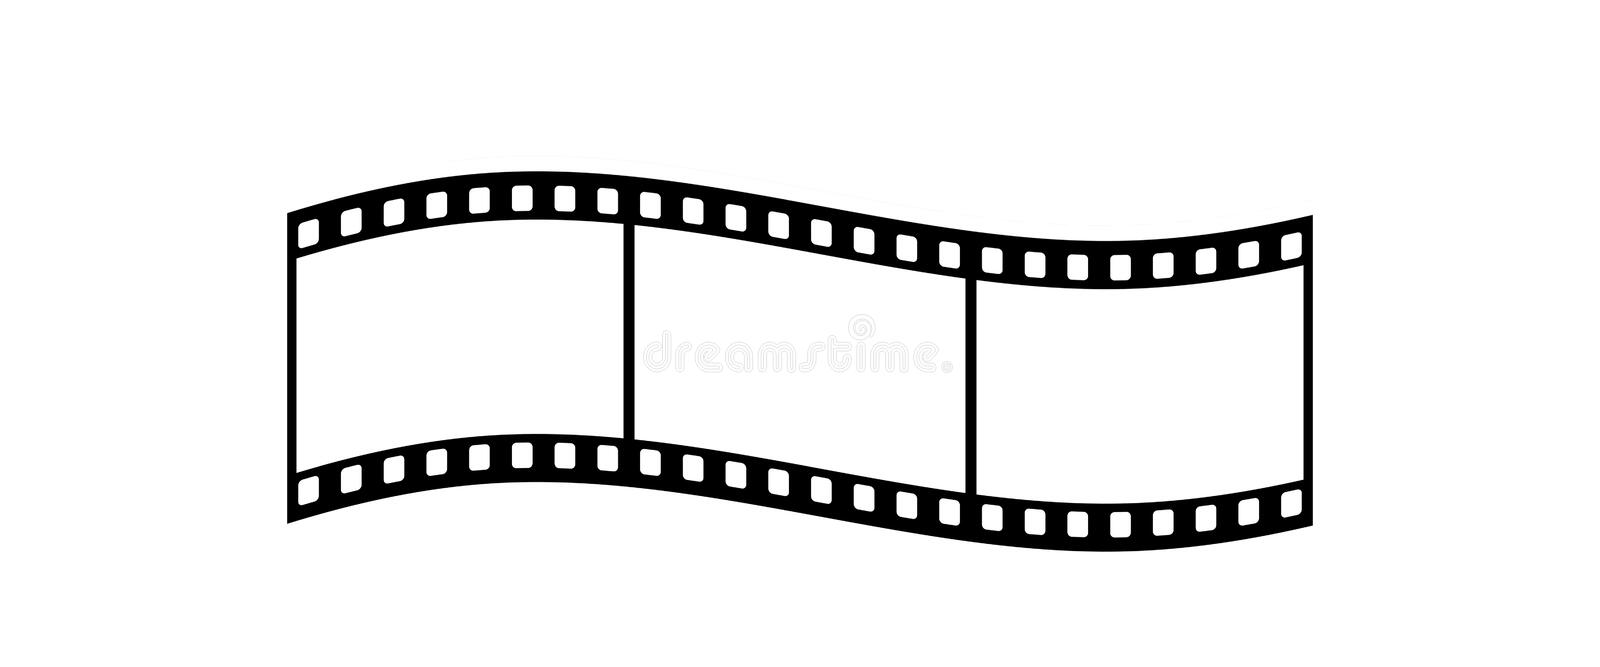 Film Strip. Curled Film Strip With Three Frames, 35mm Format, White Background vector illustration